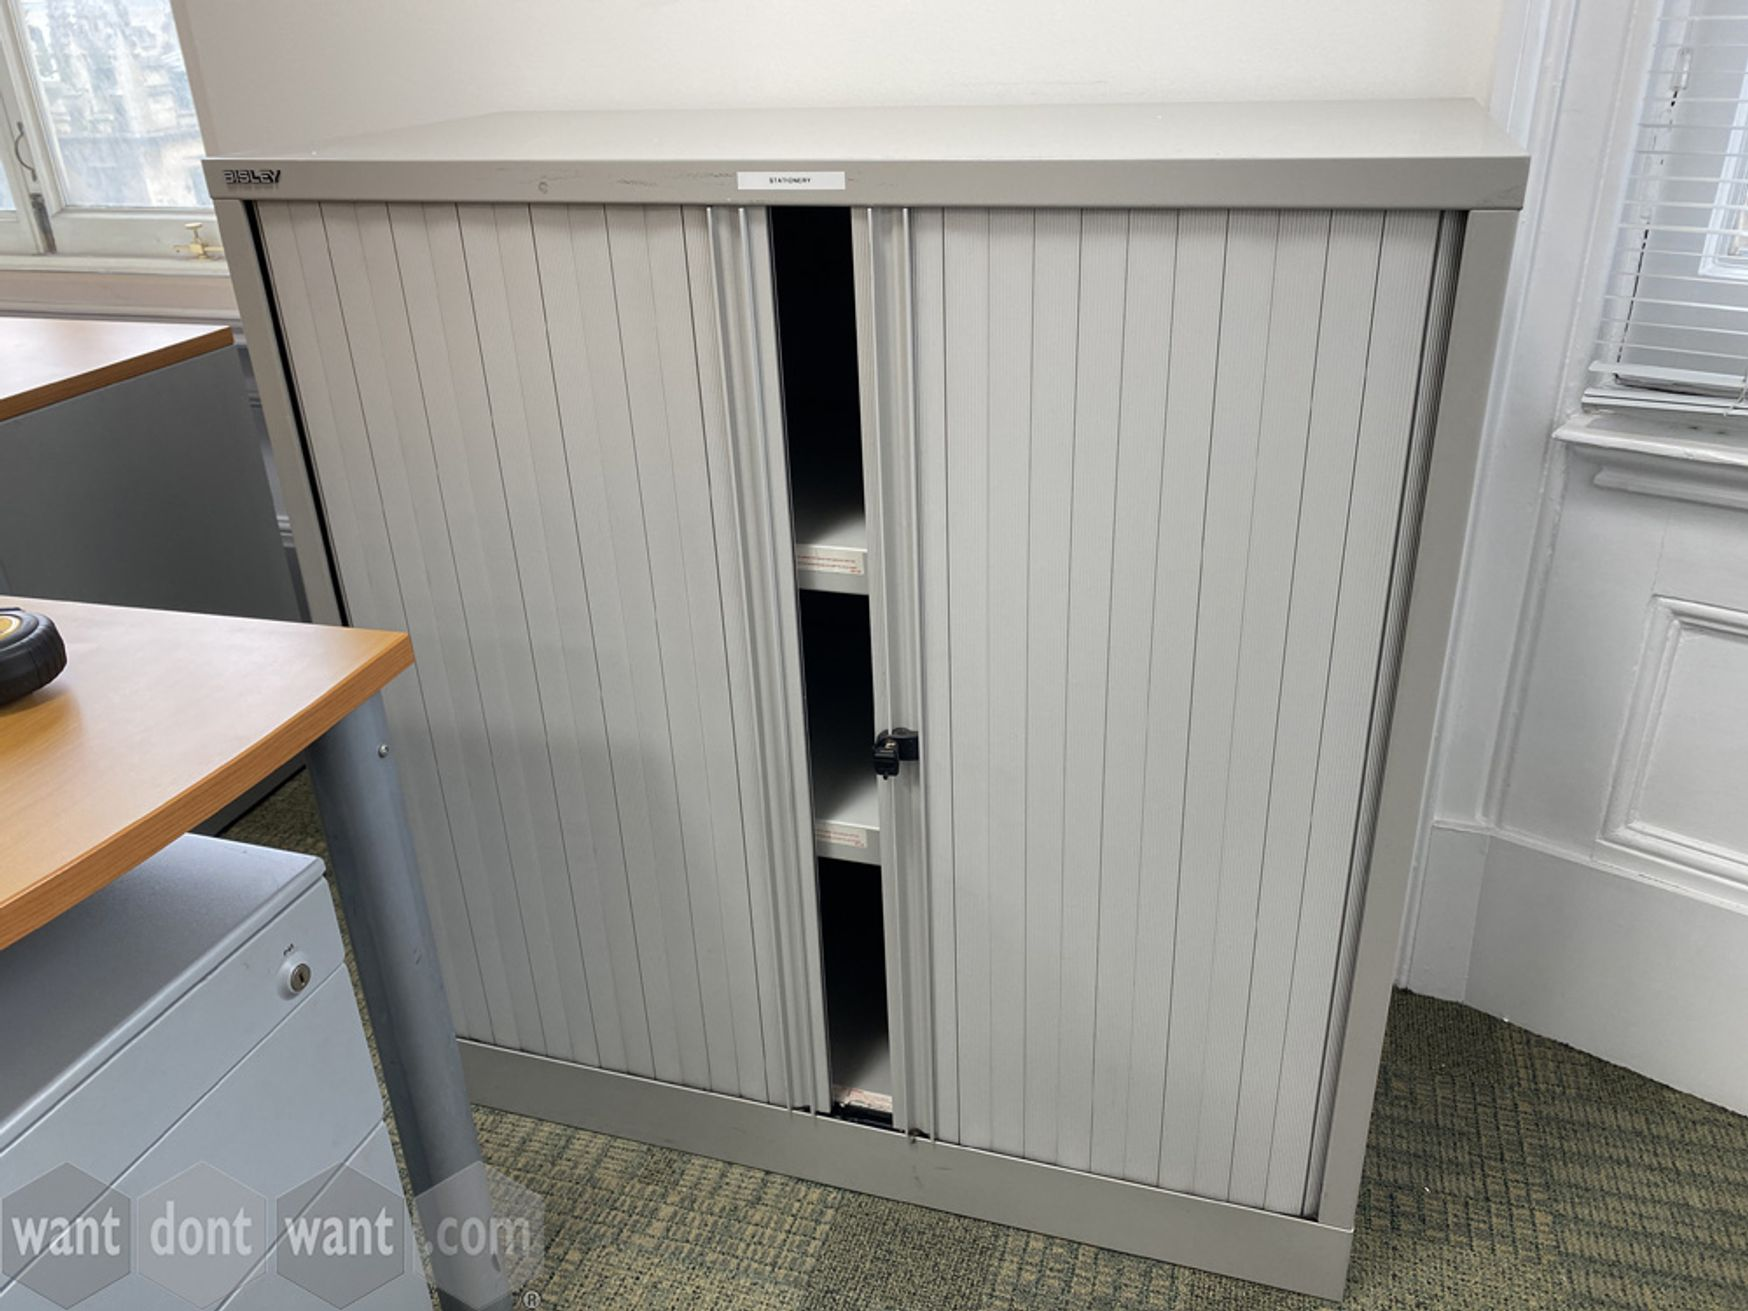 Used Bisley side tambour-door unit with shelves. 1000mm wide x 1020mm high